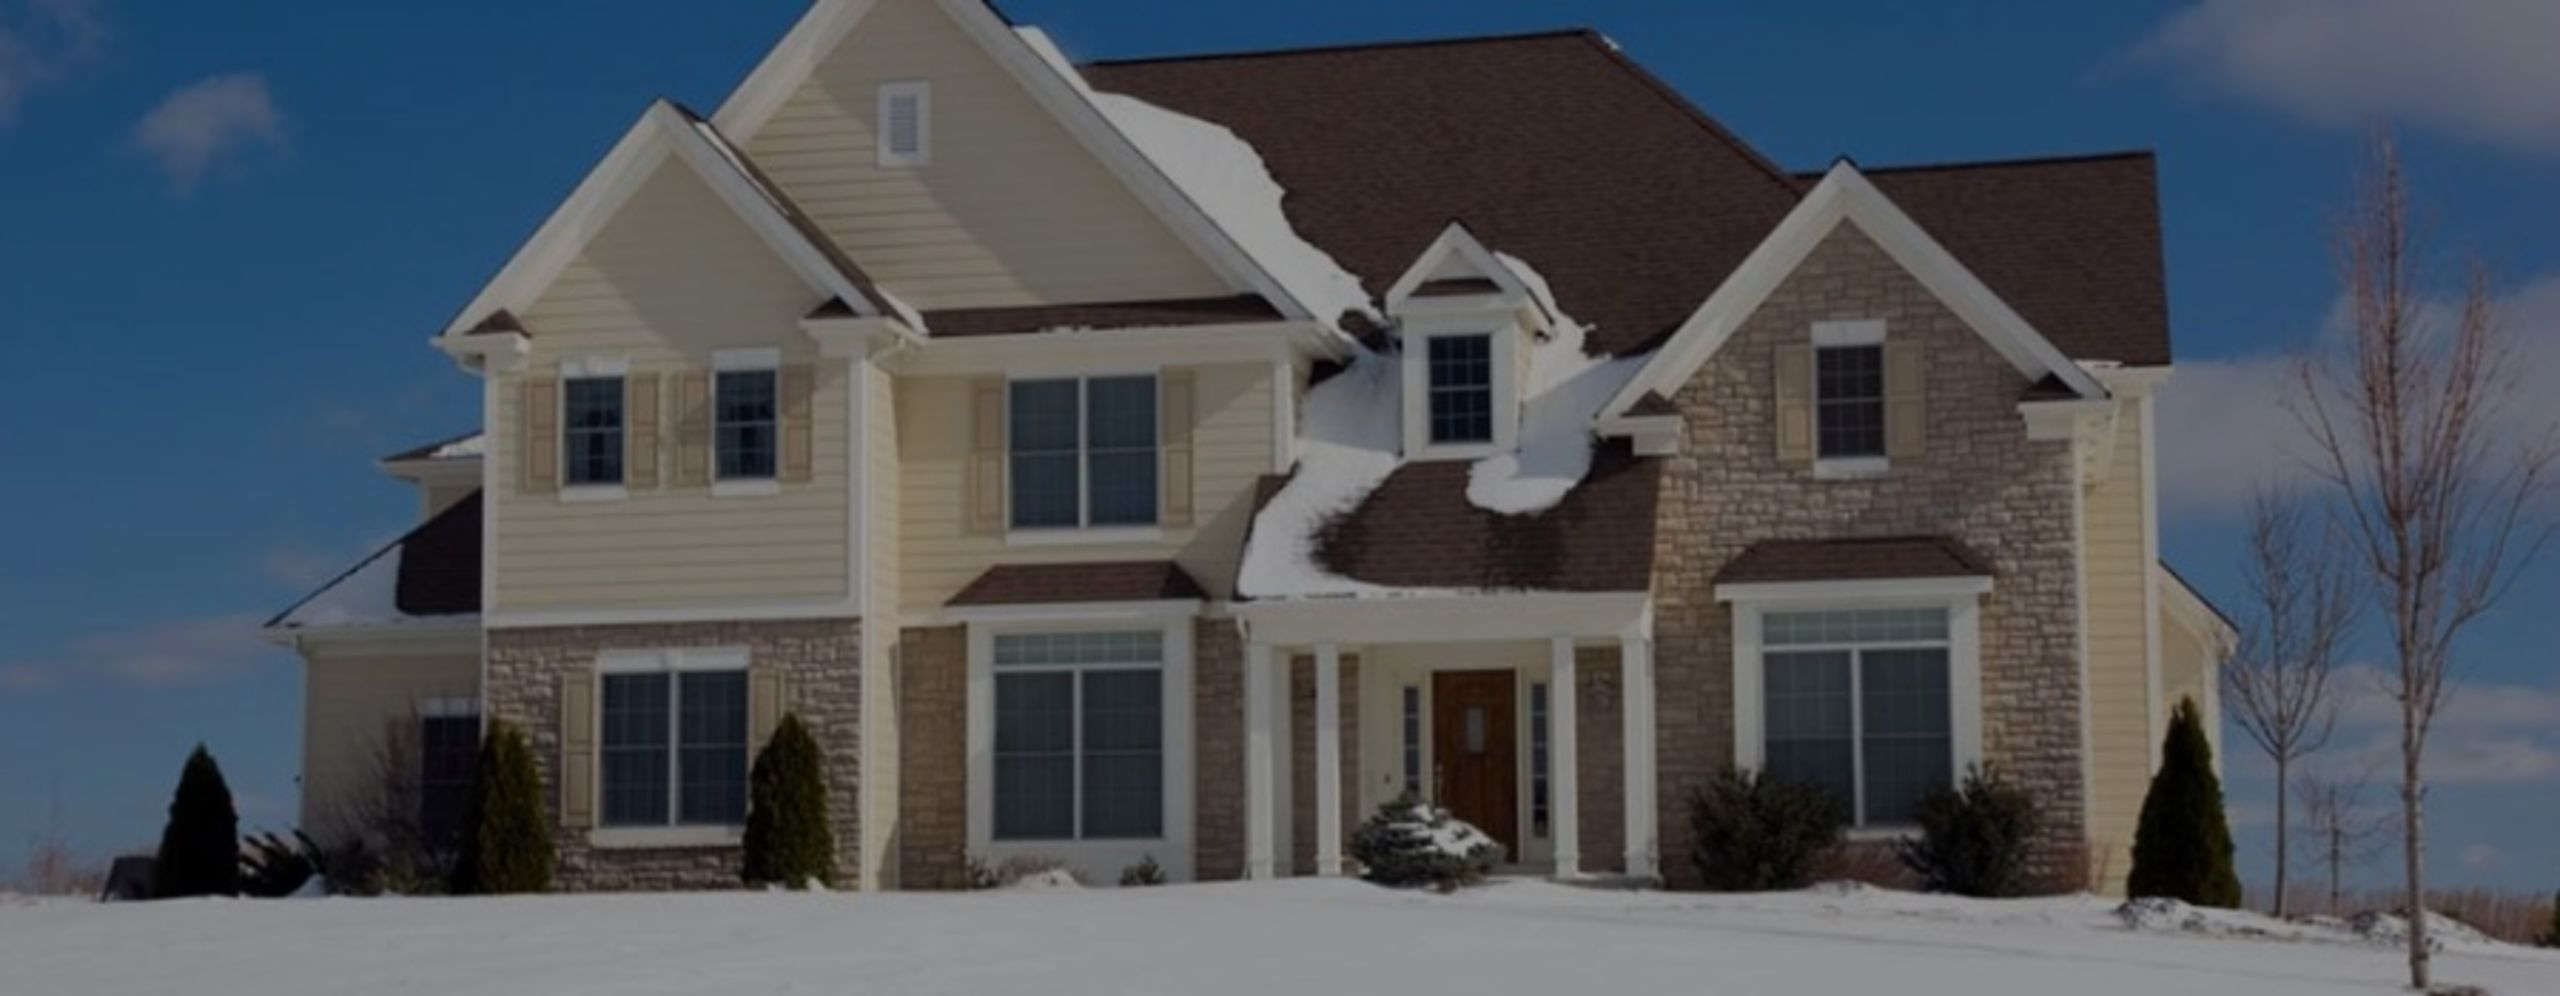 12 Home Maintenance Tips to Prep for Winter